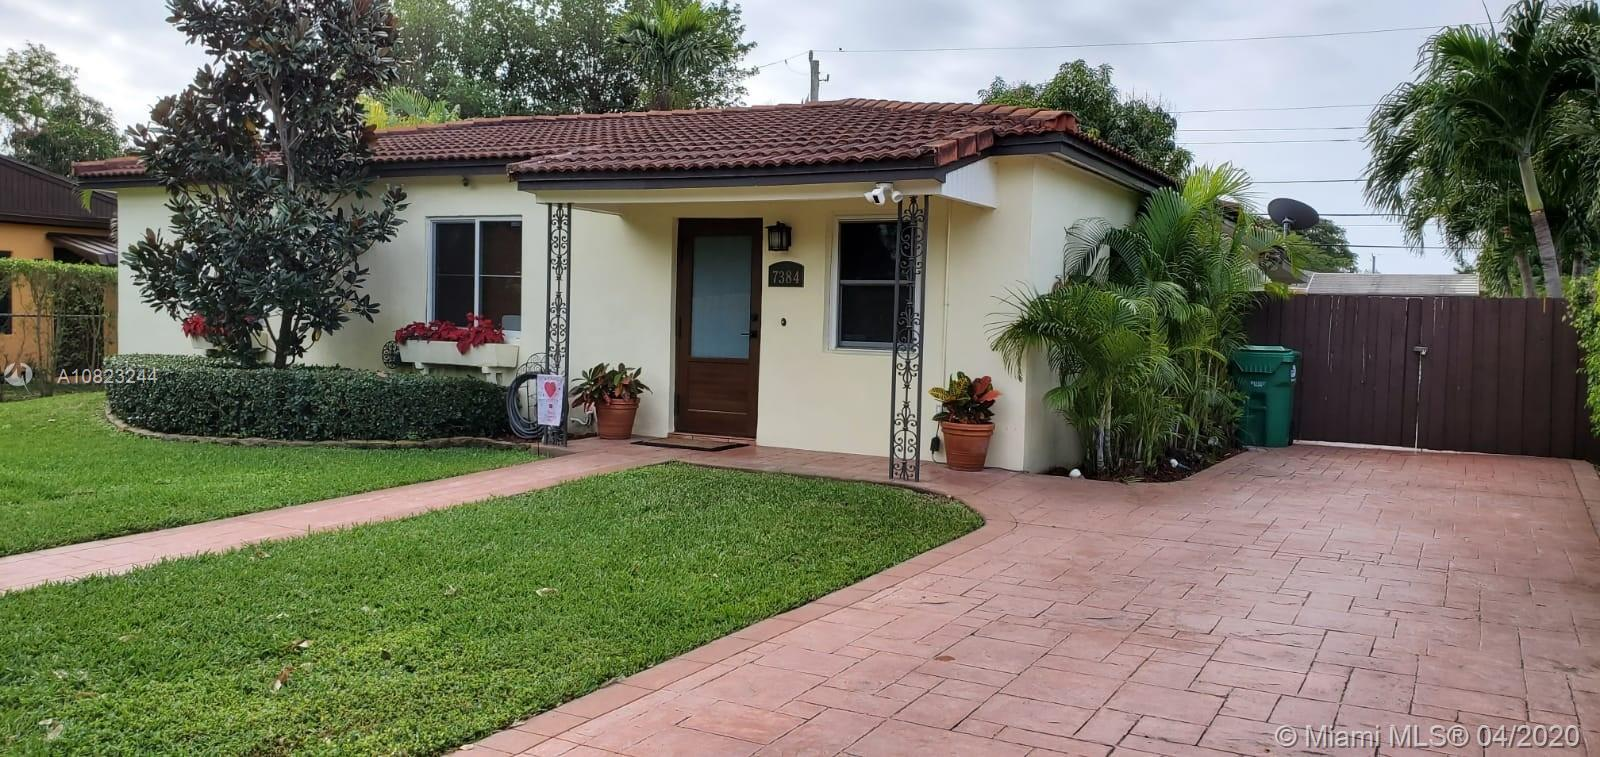 7384 S Waterway Dr, Miami, Florida 33155, 4 Bedrooms Bedrooms, ,2 BathroomsBathrooms,Residential,For Sale,7384 S Waterway Dr,A10823244